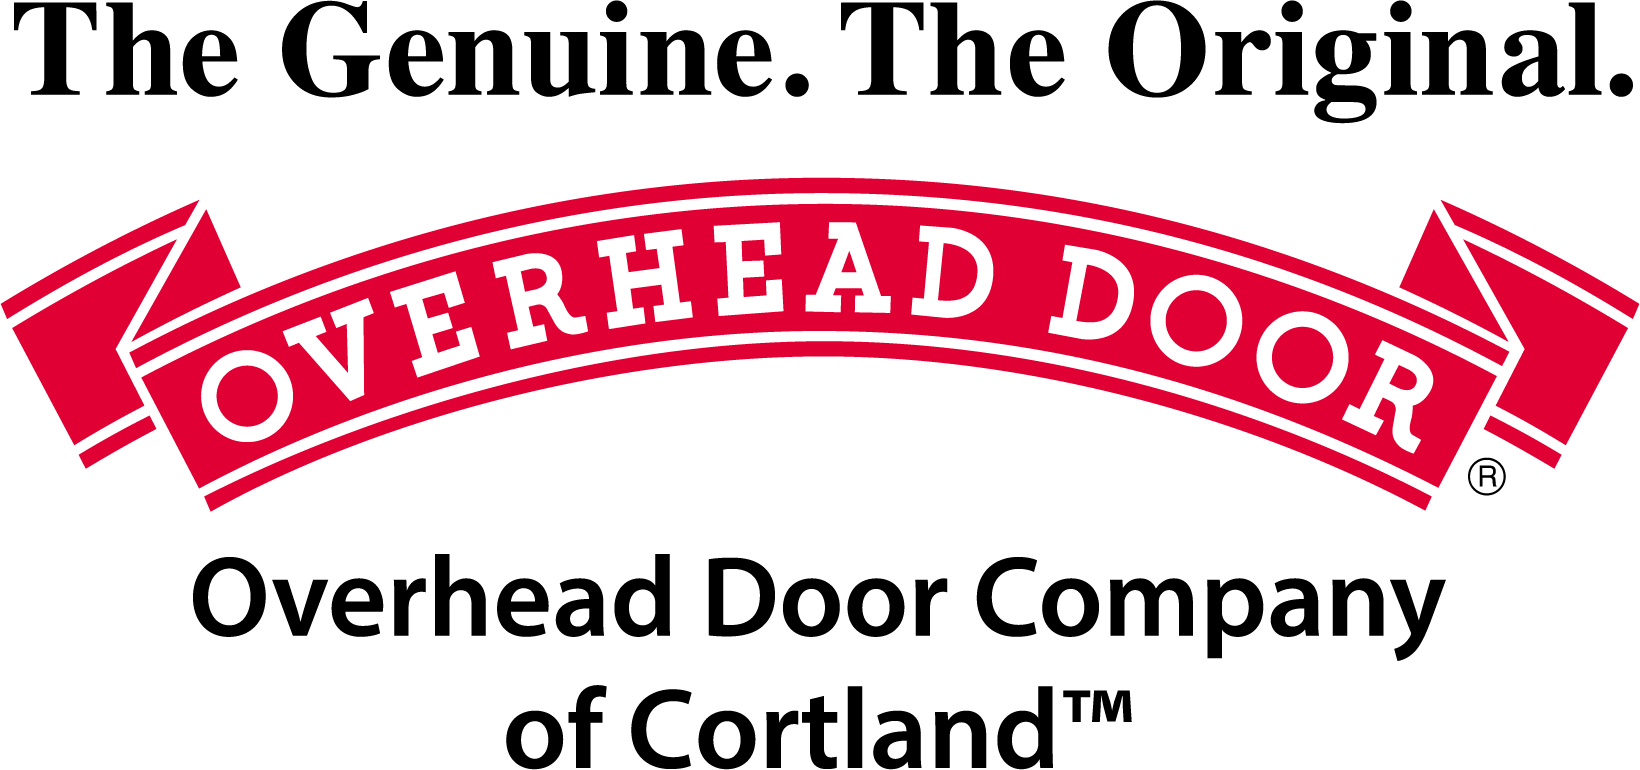 Overhead Door Company of Cortland™